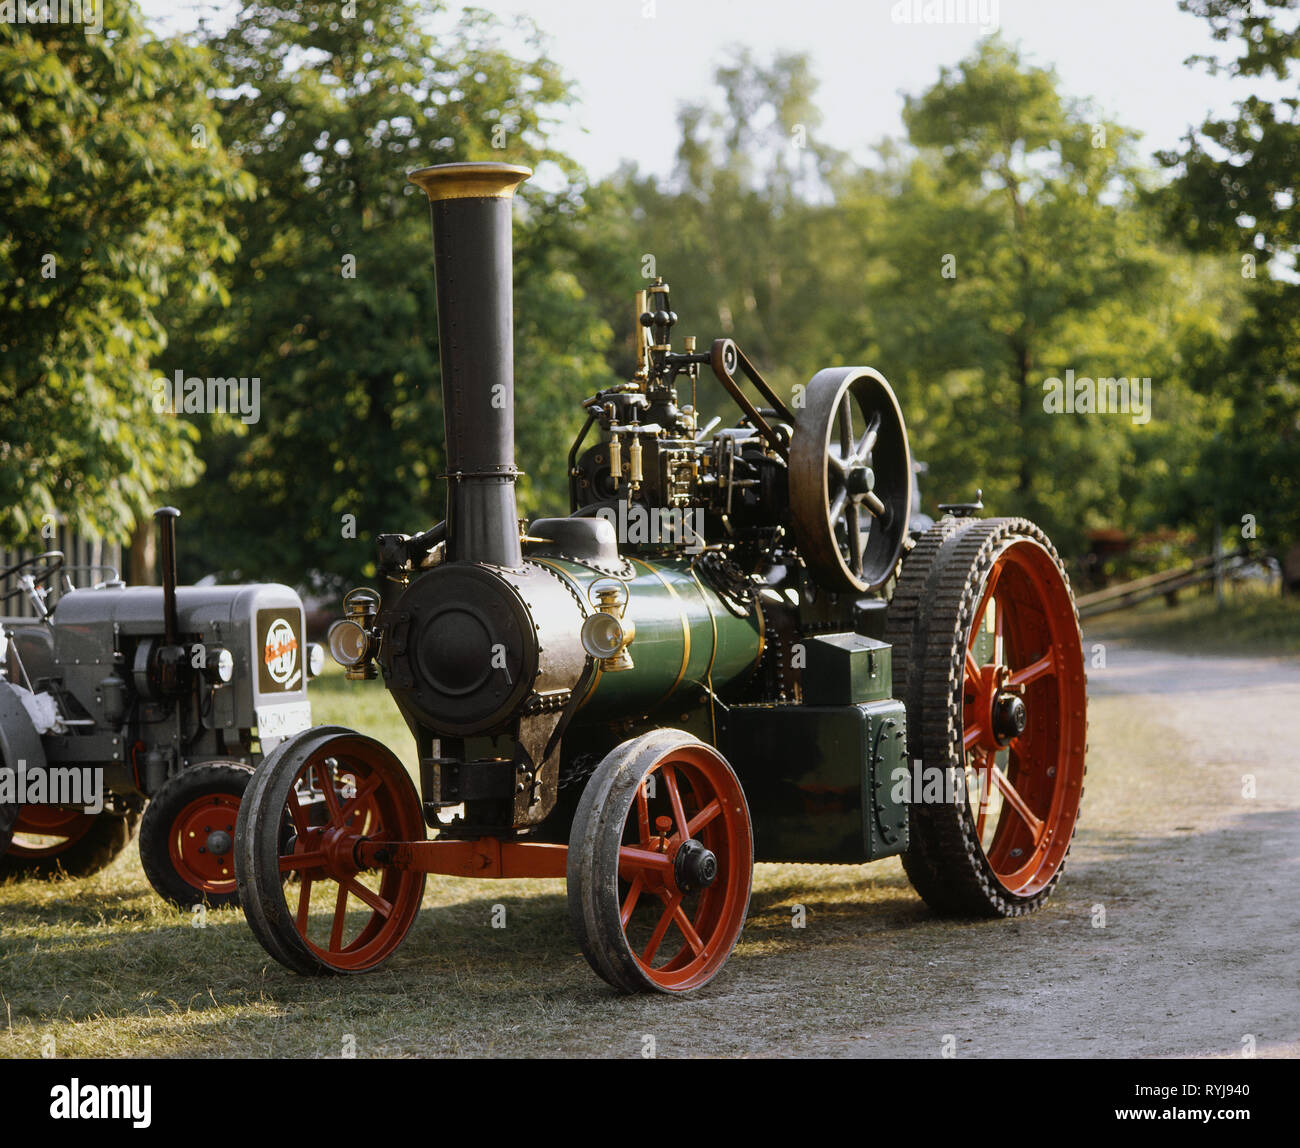 transport / transportation, vehicle, traction engine, tractor, Additional-Rights-Clearance-Info-Not-Available - Stock Image